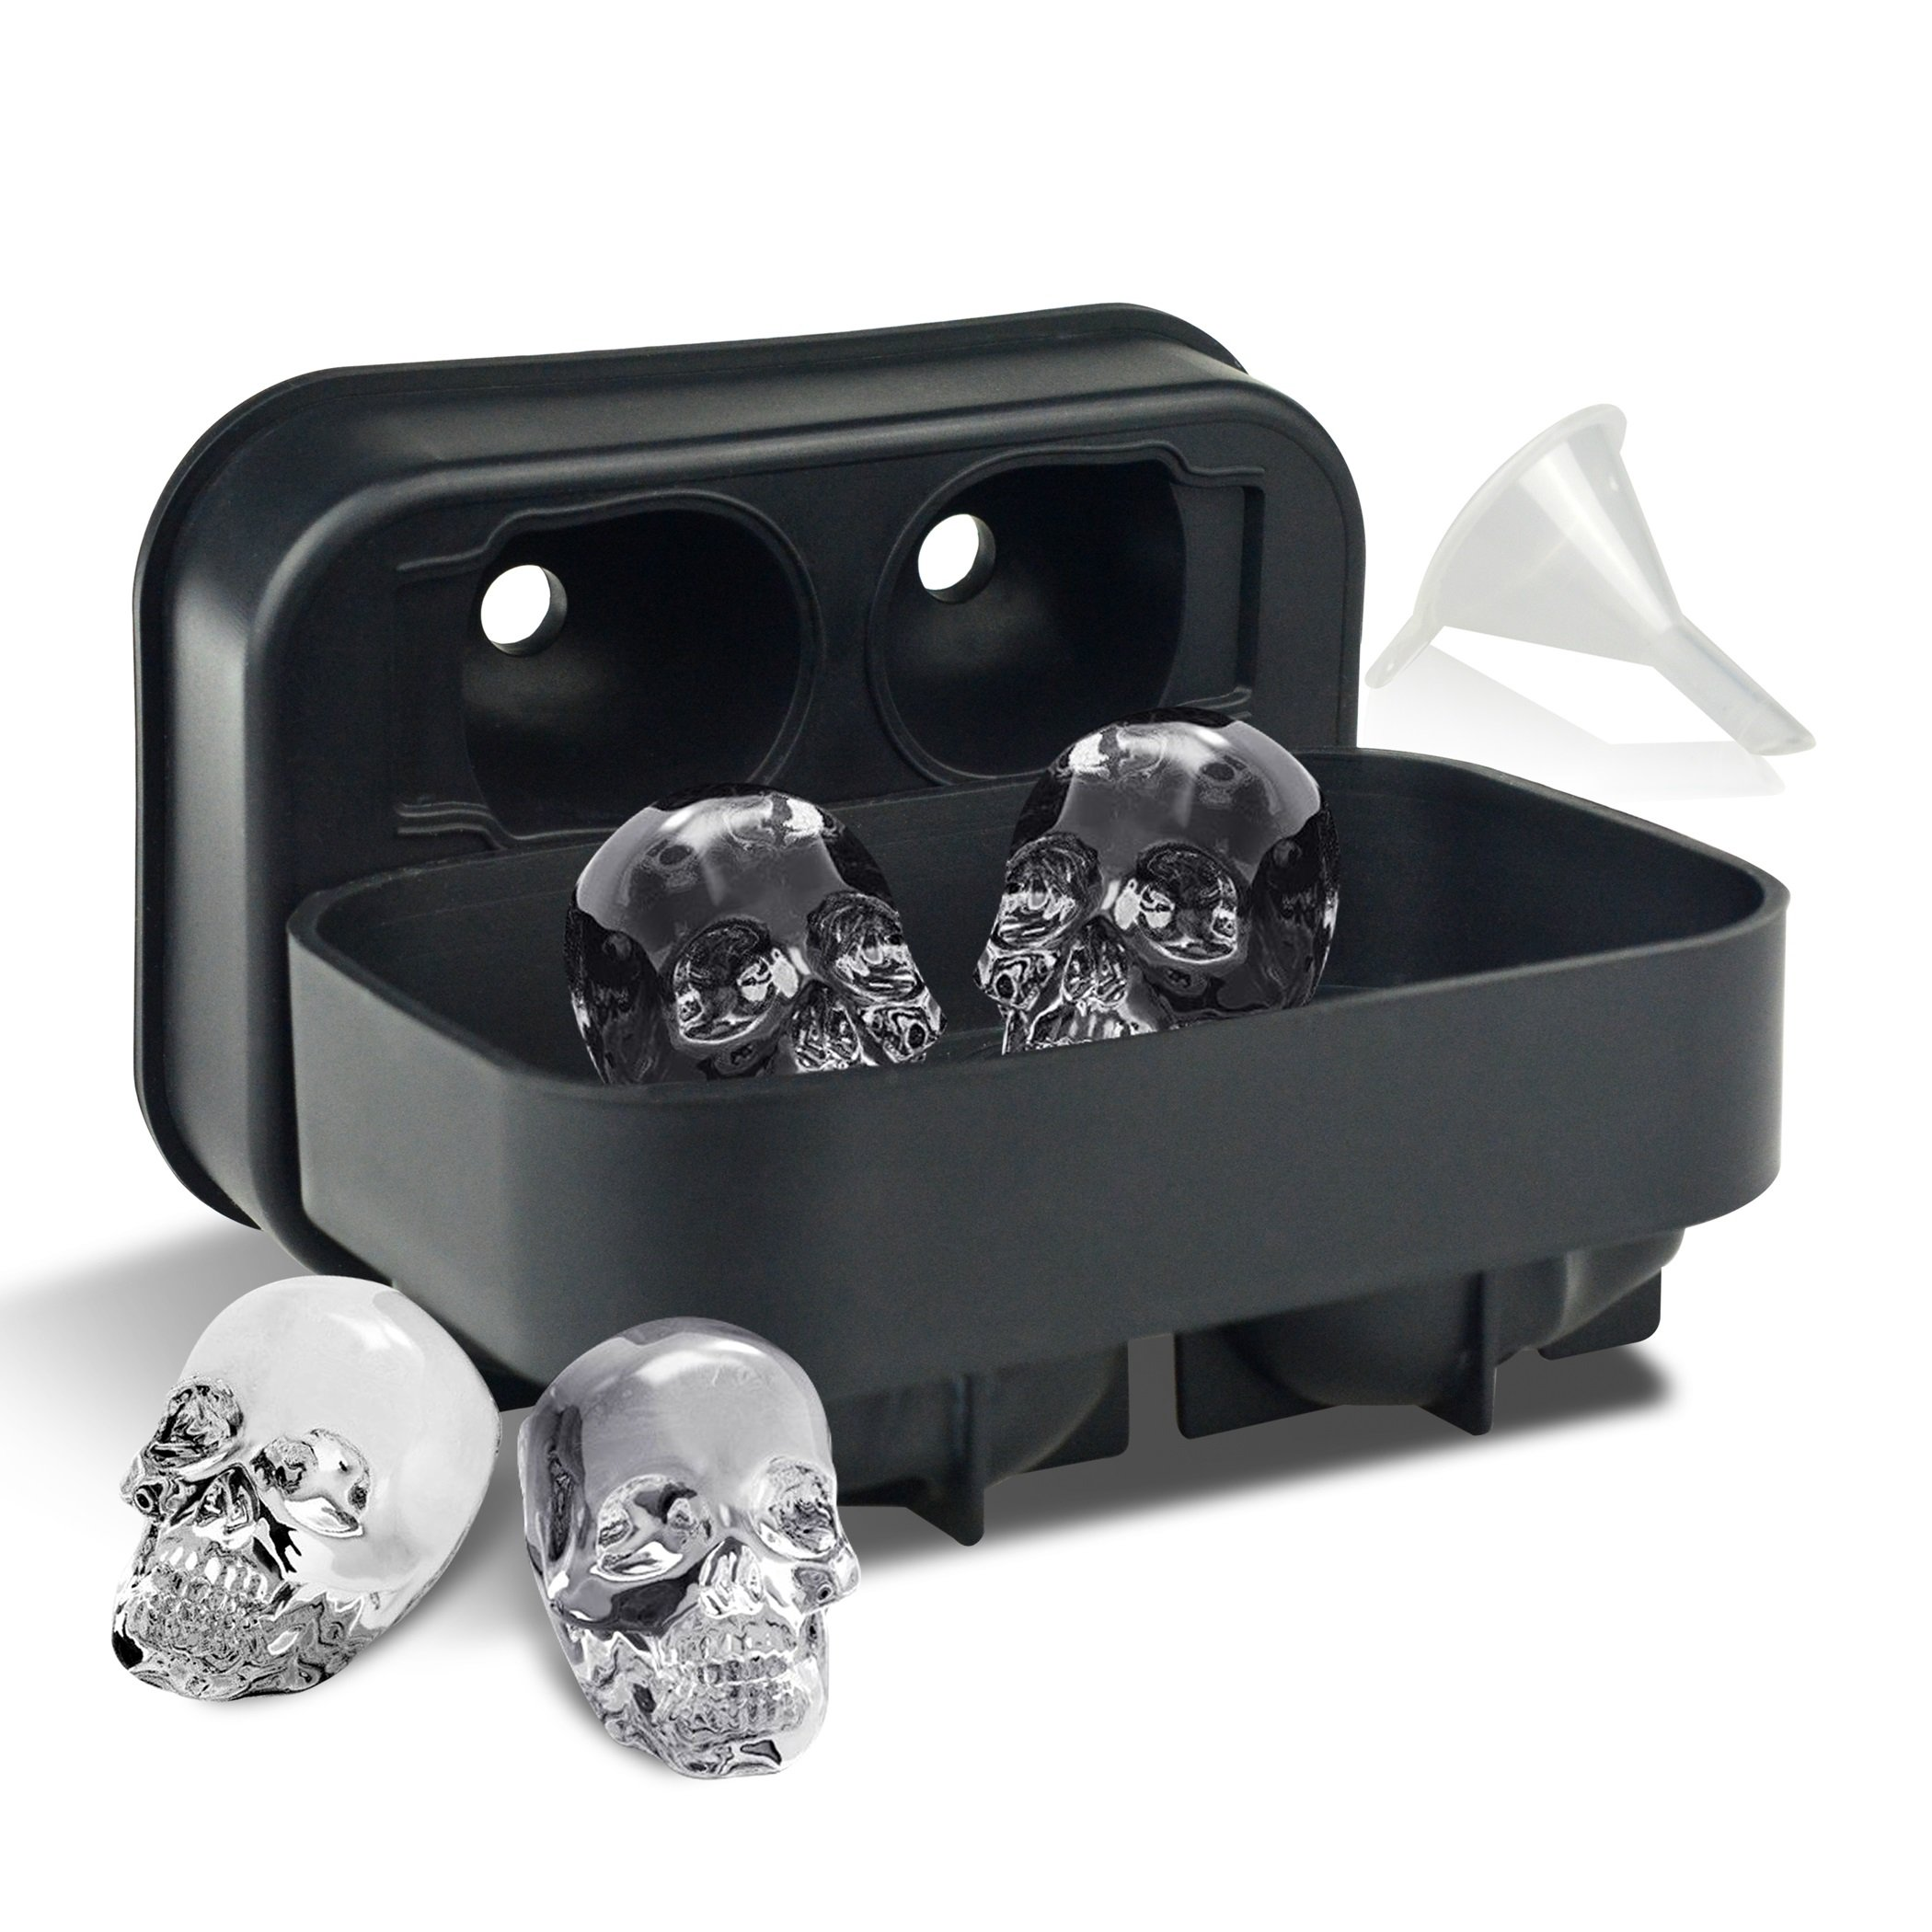 3D Skull Ice Cube Trays for Whisky, Cocktail, Wine, Kitchen, Bar, Party and Halloween by LINPOZONE (Image #1)